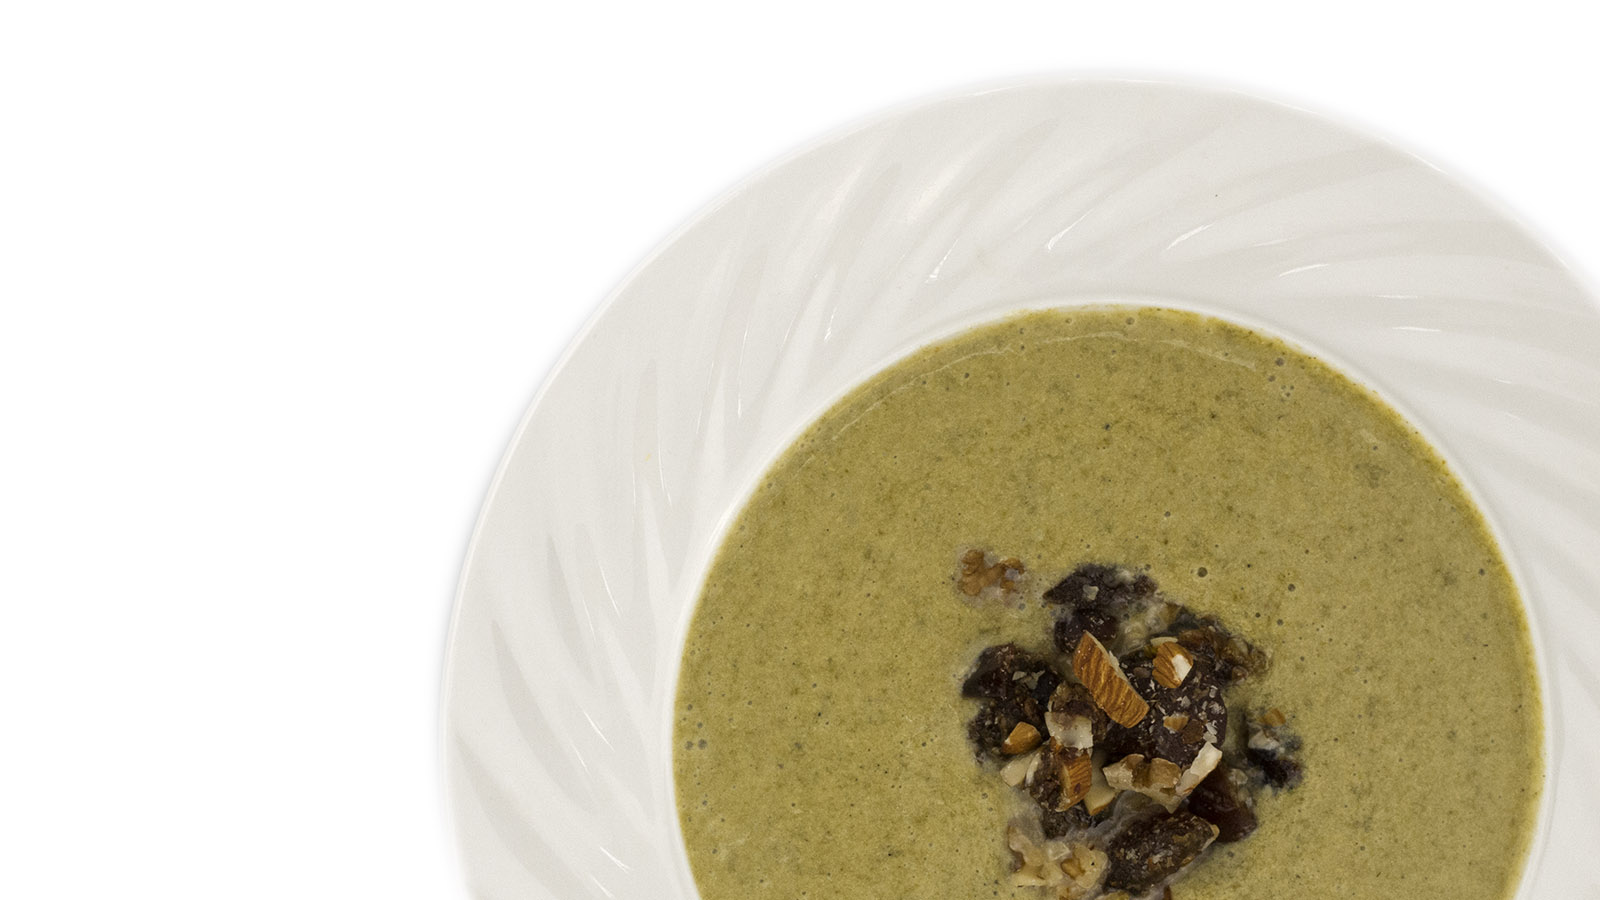 Spinach&Broccoli creamsoup with garnish